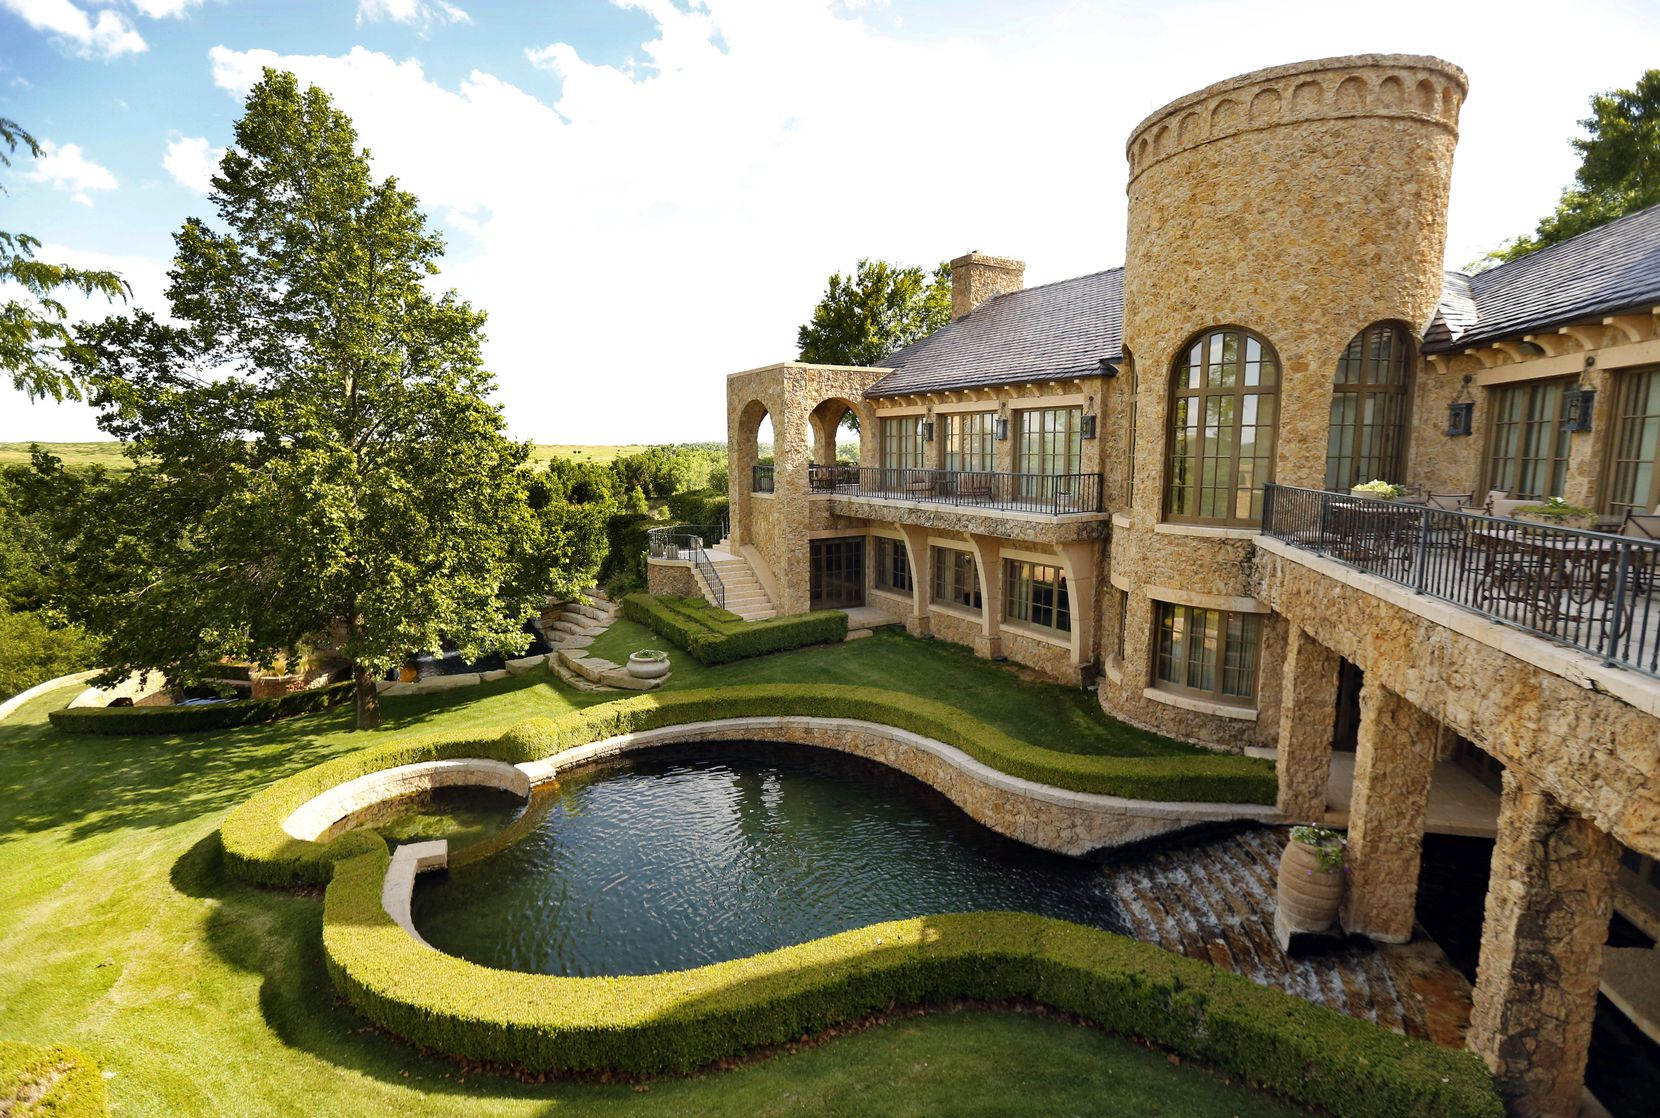 T. Boone Pickens' Mesa Vista Ranch in the Panhandle of Texas has a guest lodge, family house and other buildings.